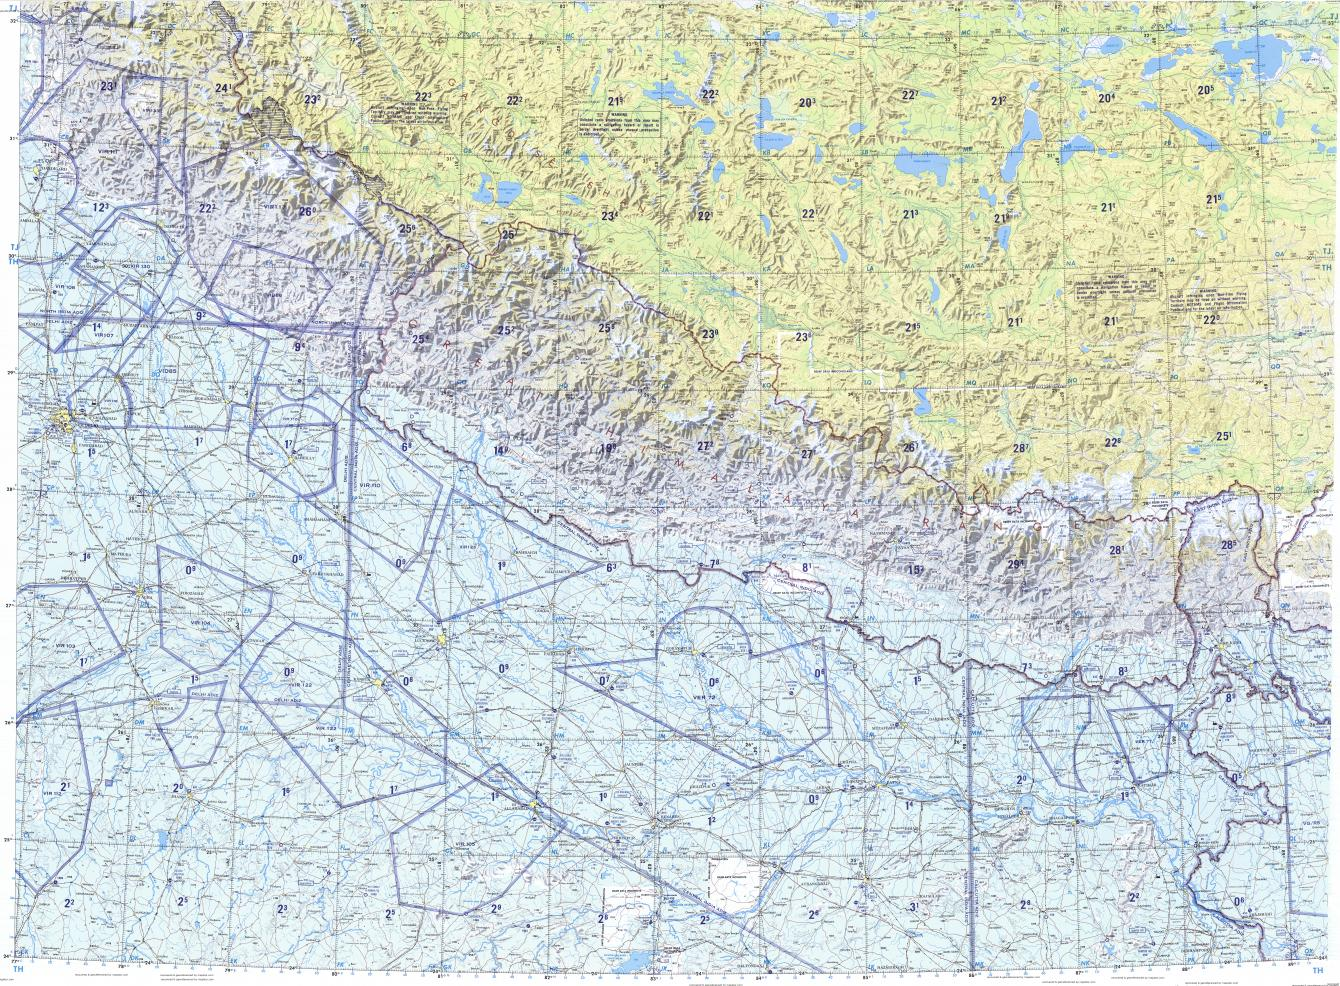 Download topographic map in area of Delhi Kanpur Lucknow mapstorcom